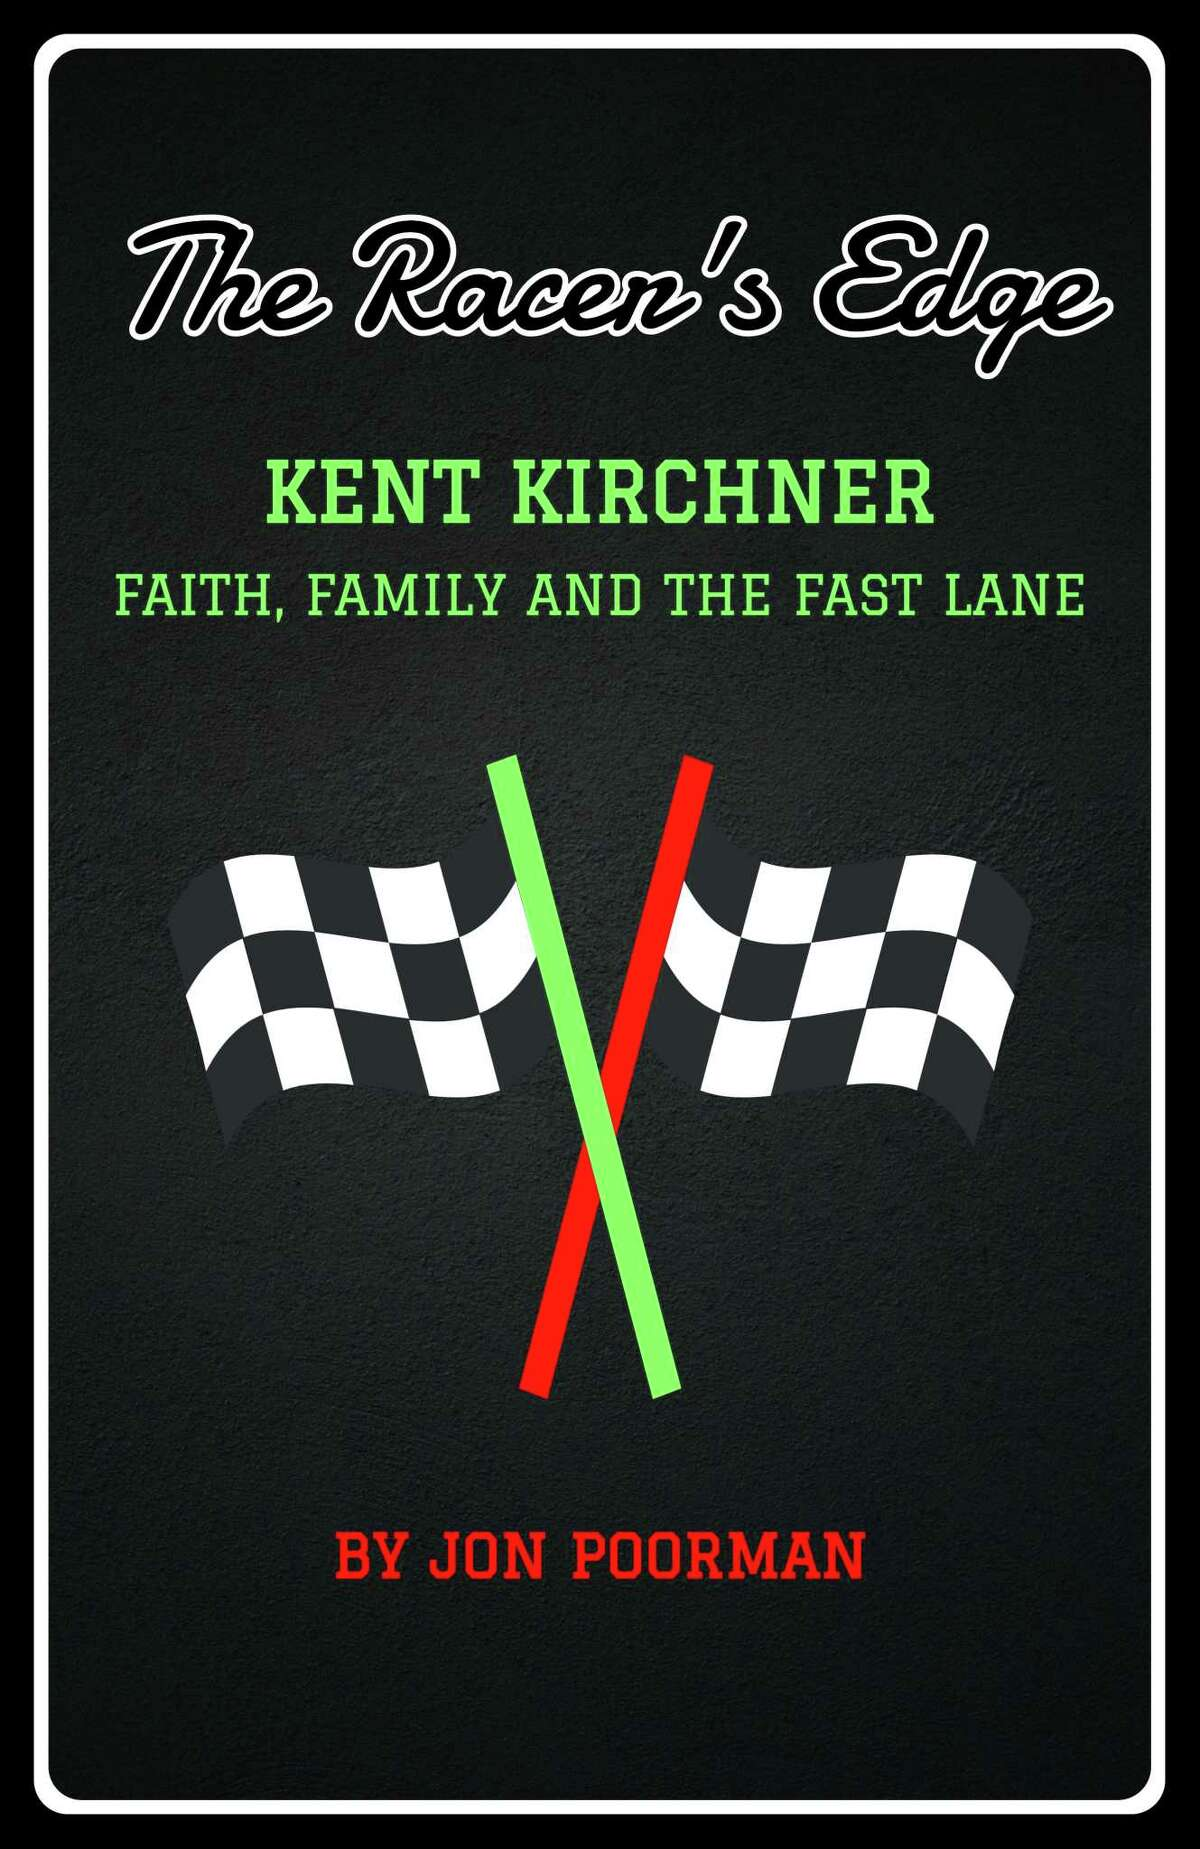 Book cover for biography of former The Woodlands swim coach Kent Kirchner. Authored by Jon Poorman.